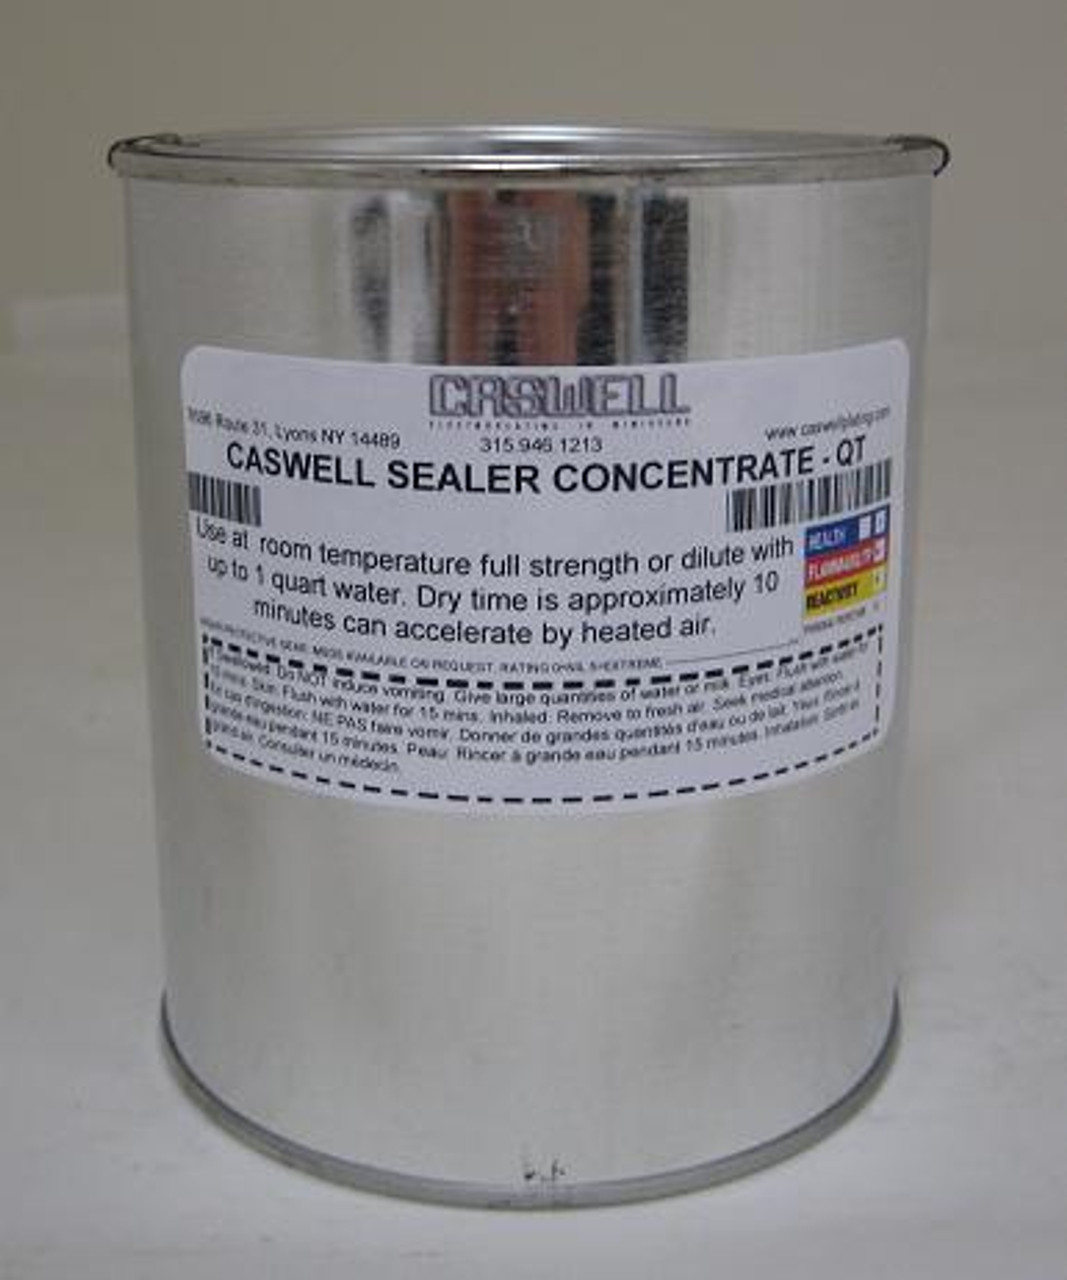 CASWELL SEALER CONCENTRATE - QT